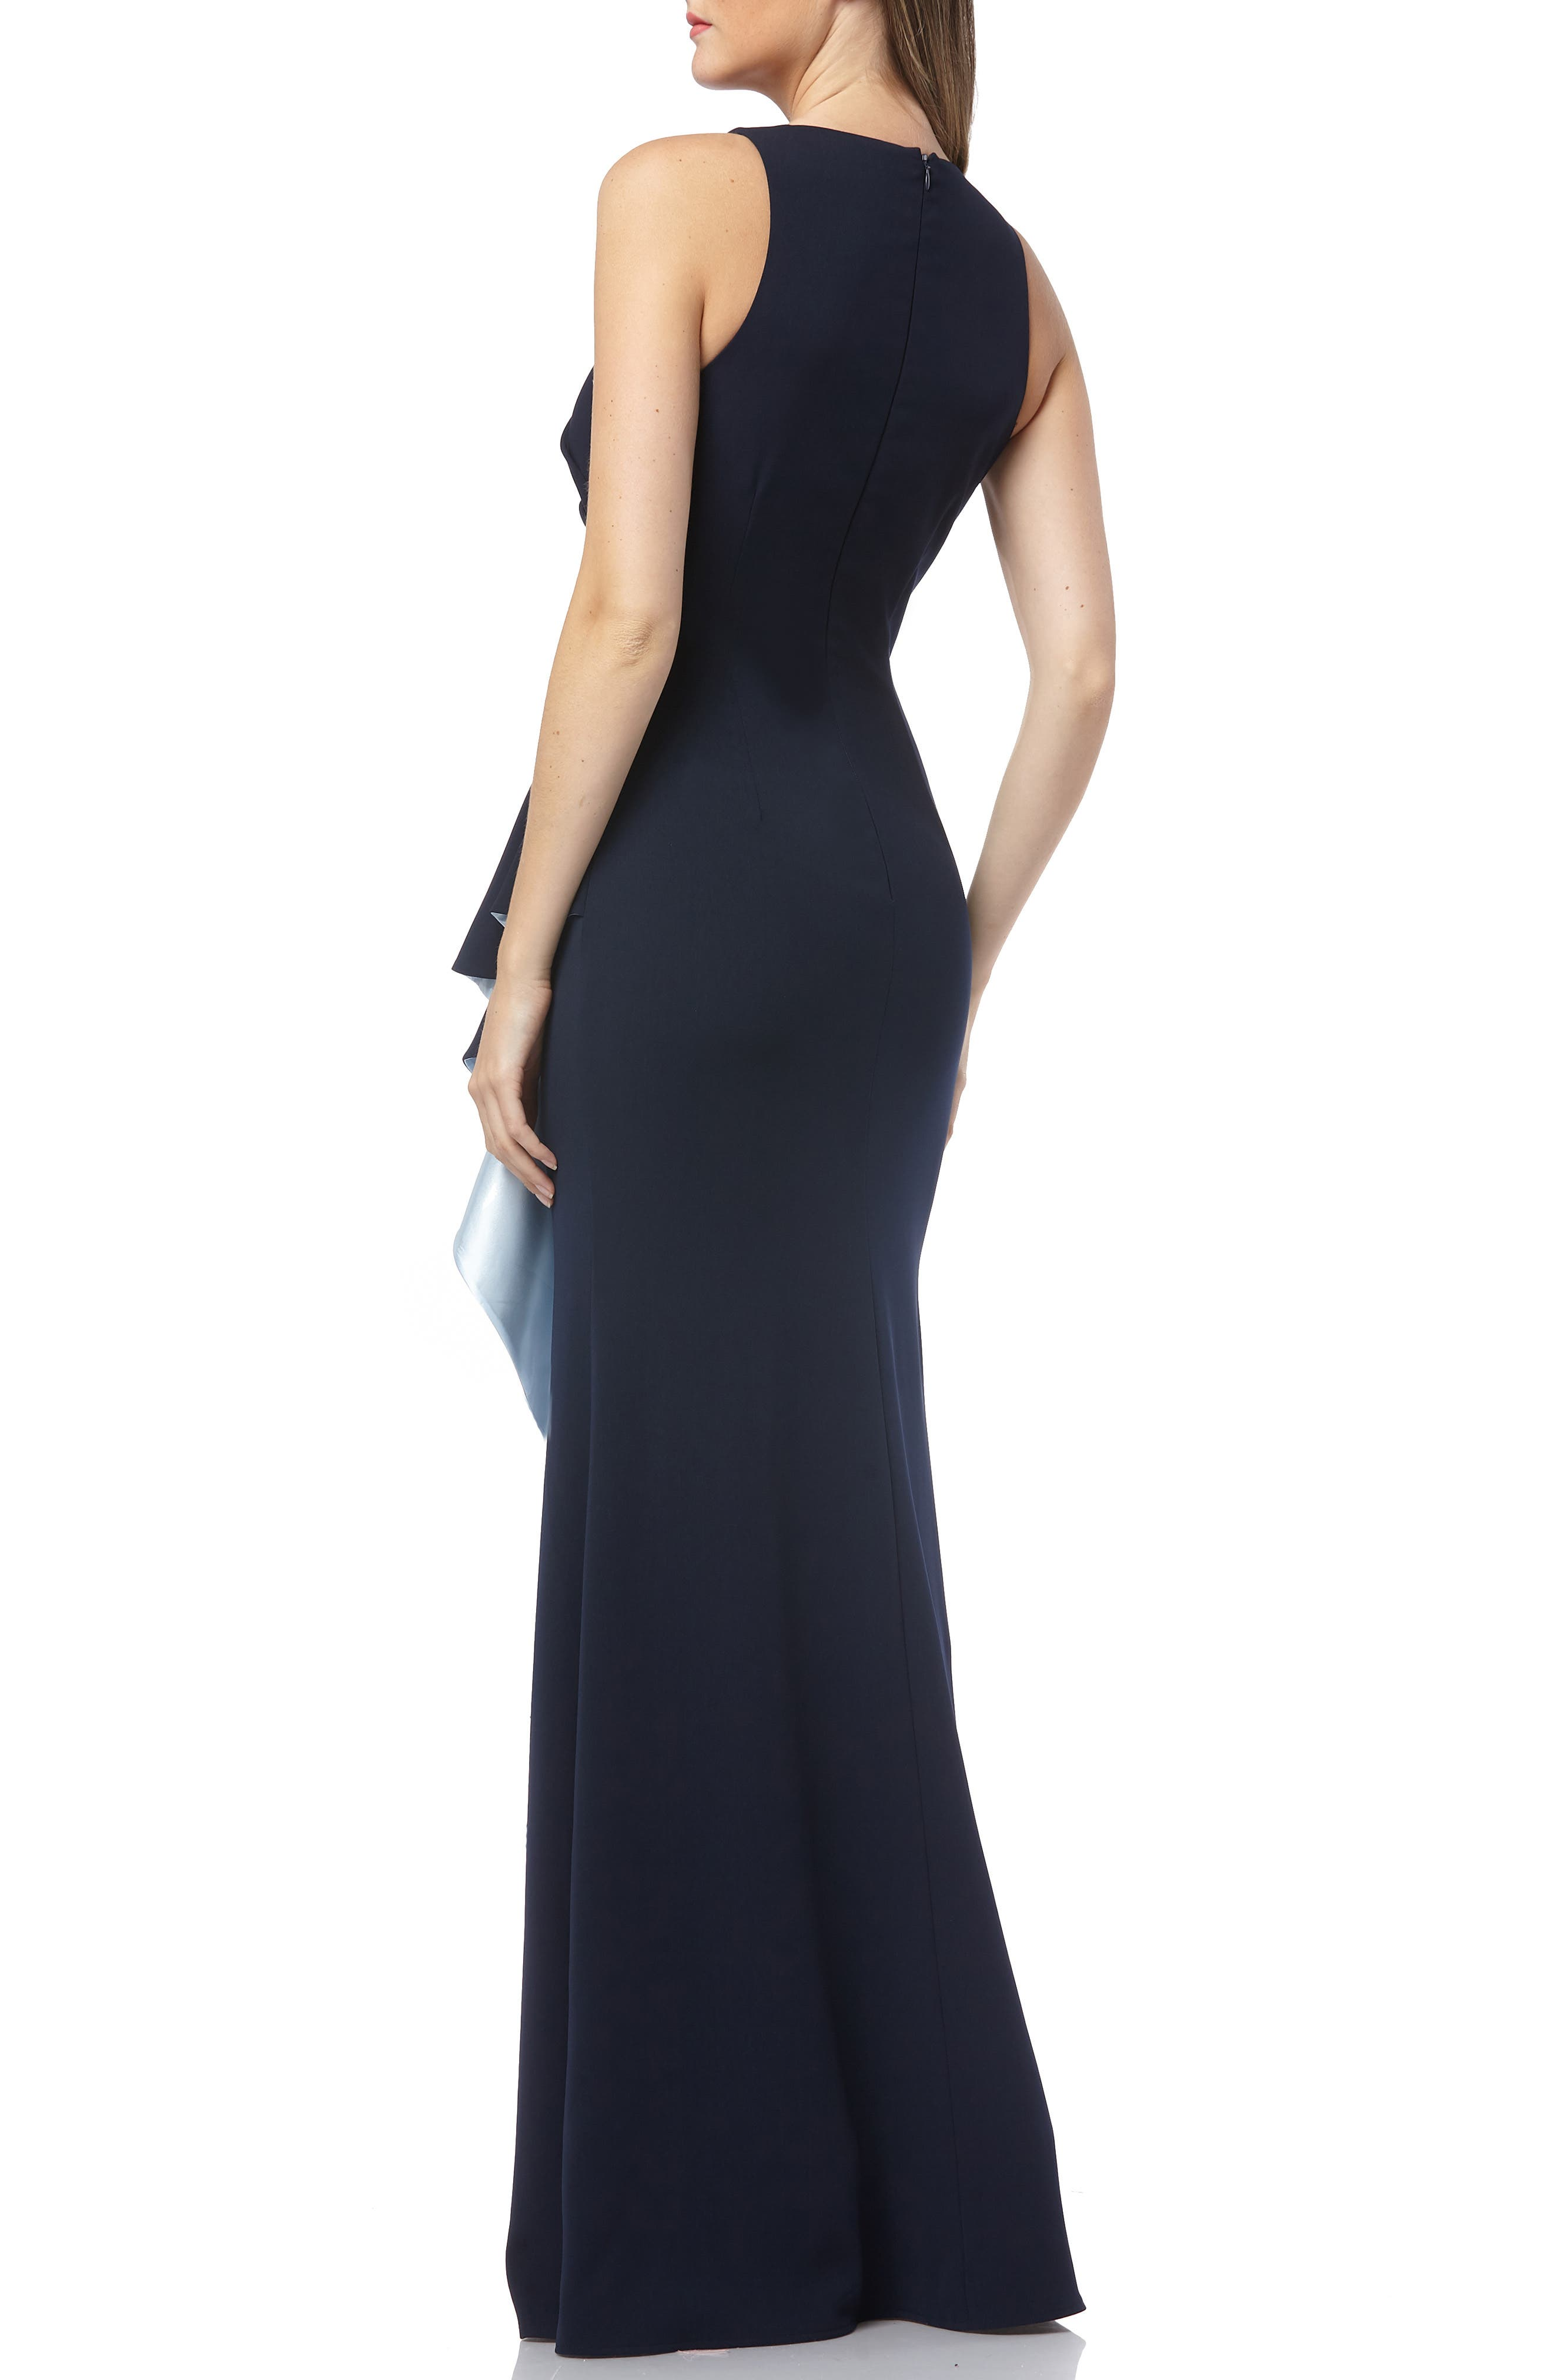 CARMEN MARC VALVO INFUSION, Carmen Marc Valvo Couture Infusion Ruffle Gown, Alternate thumbnail 2, color, NAVY/ ICE BLUE